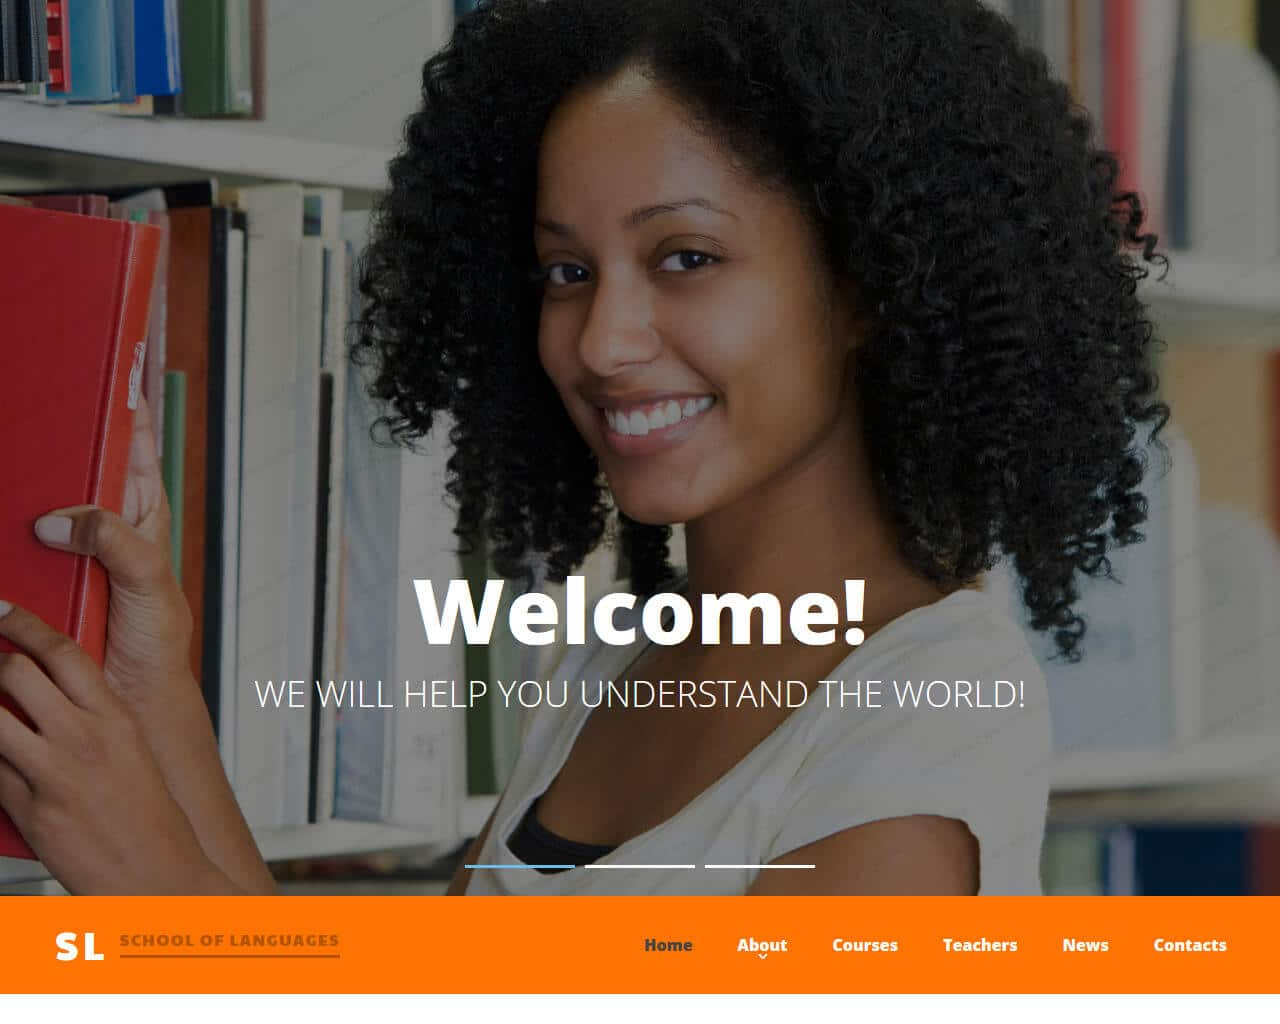 School of Languages Website Template